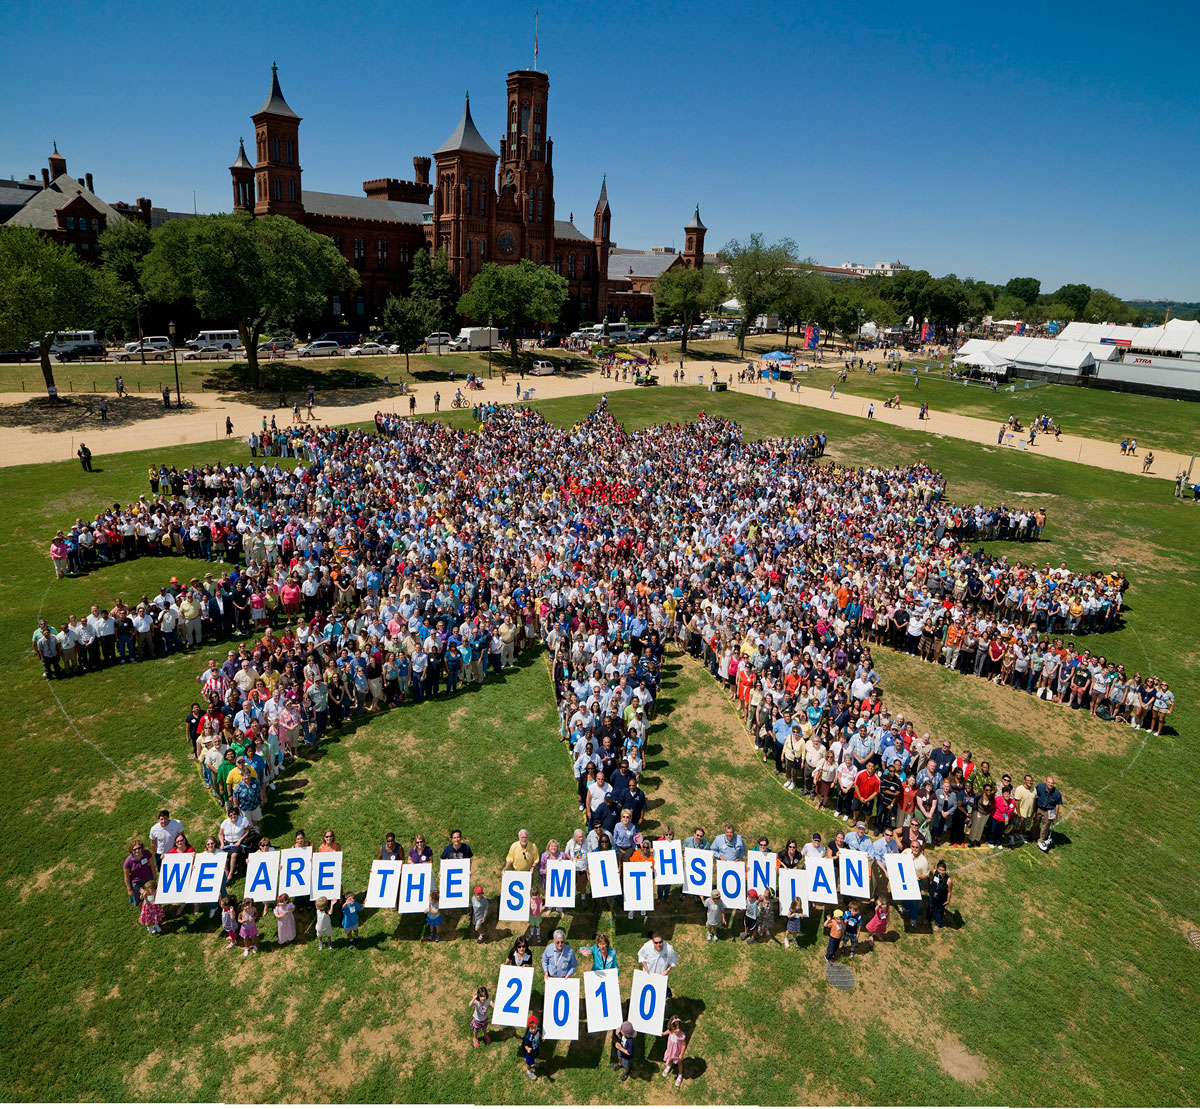 Smithsonian Staff Photo on The National Mall, July 1, 2010, by Dane Penland